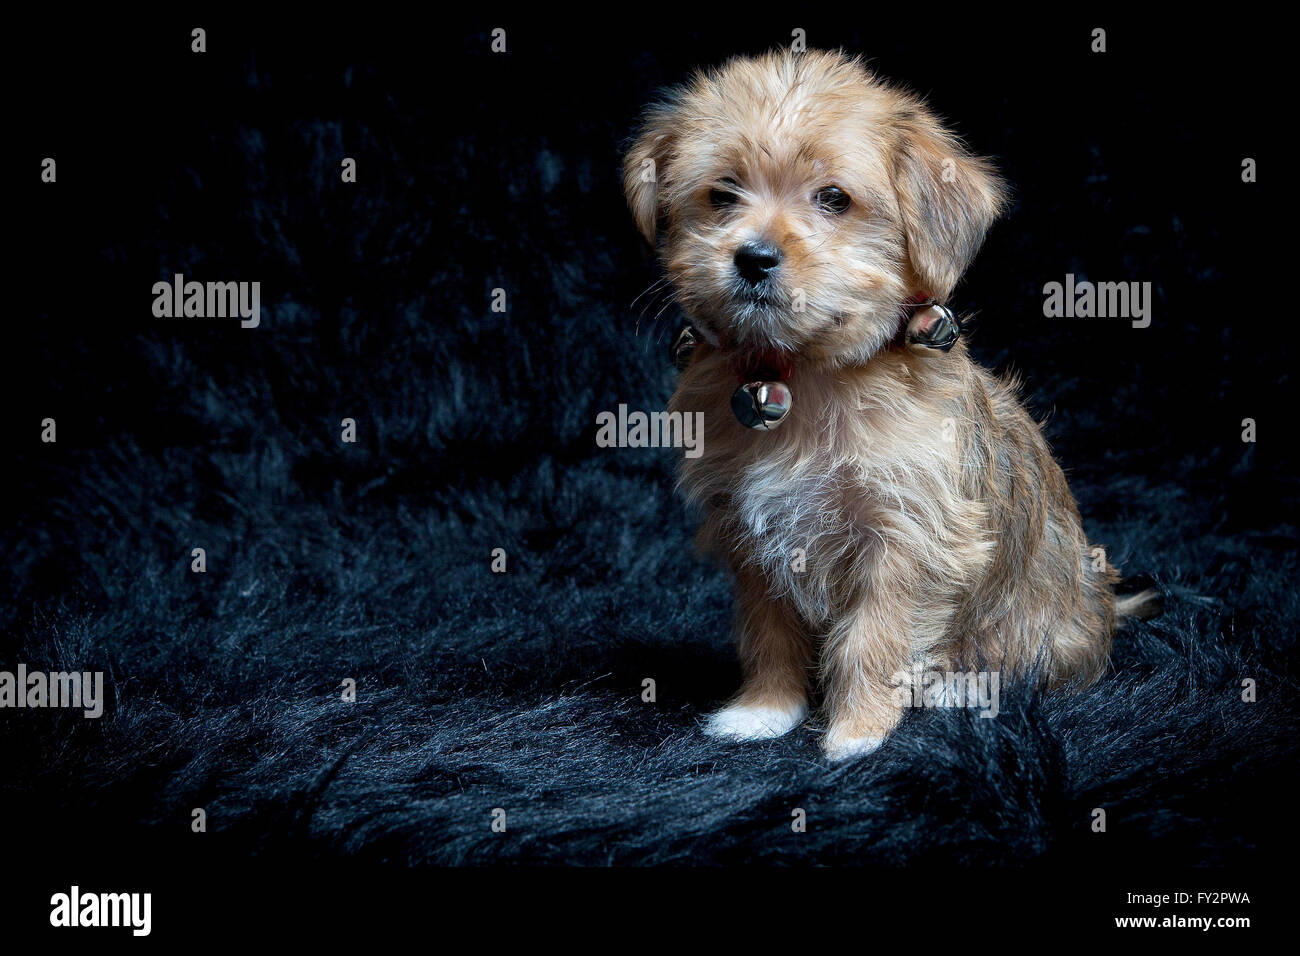 Yorkshire Terrier and Maltese Mixed Breed Puppy - Stock Image